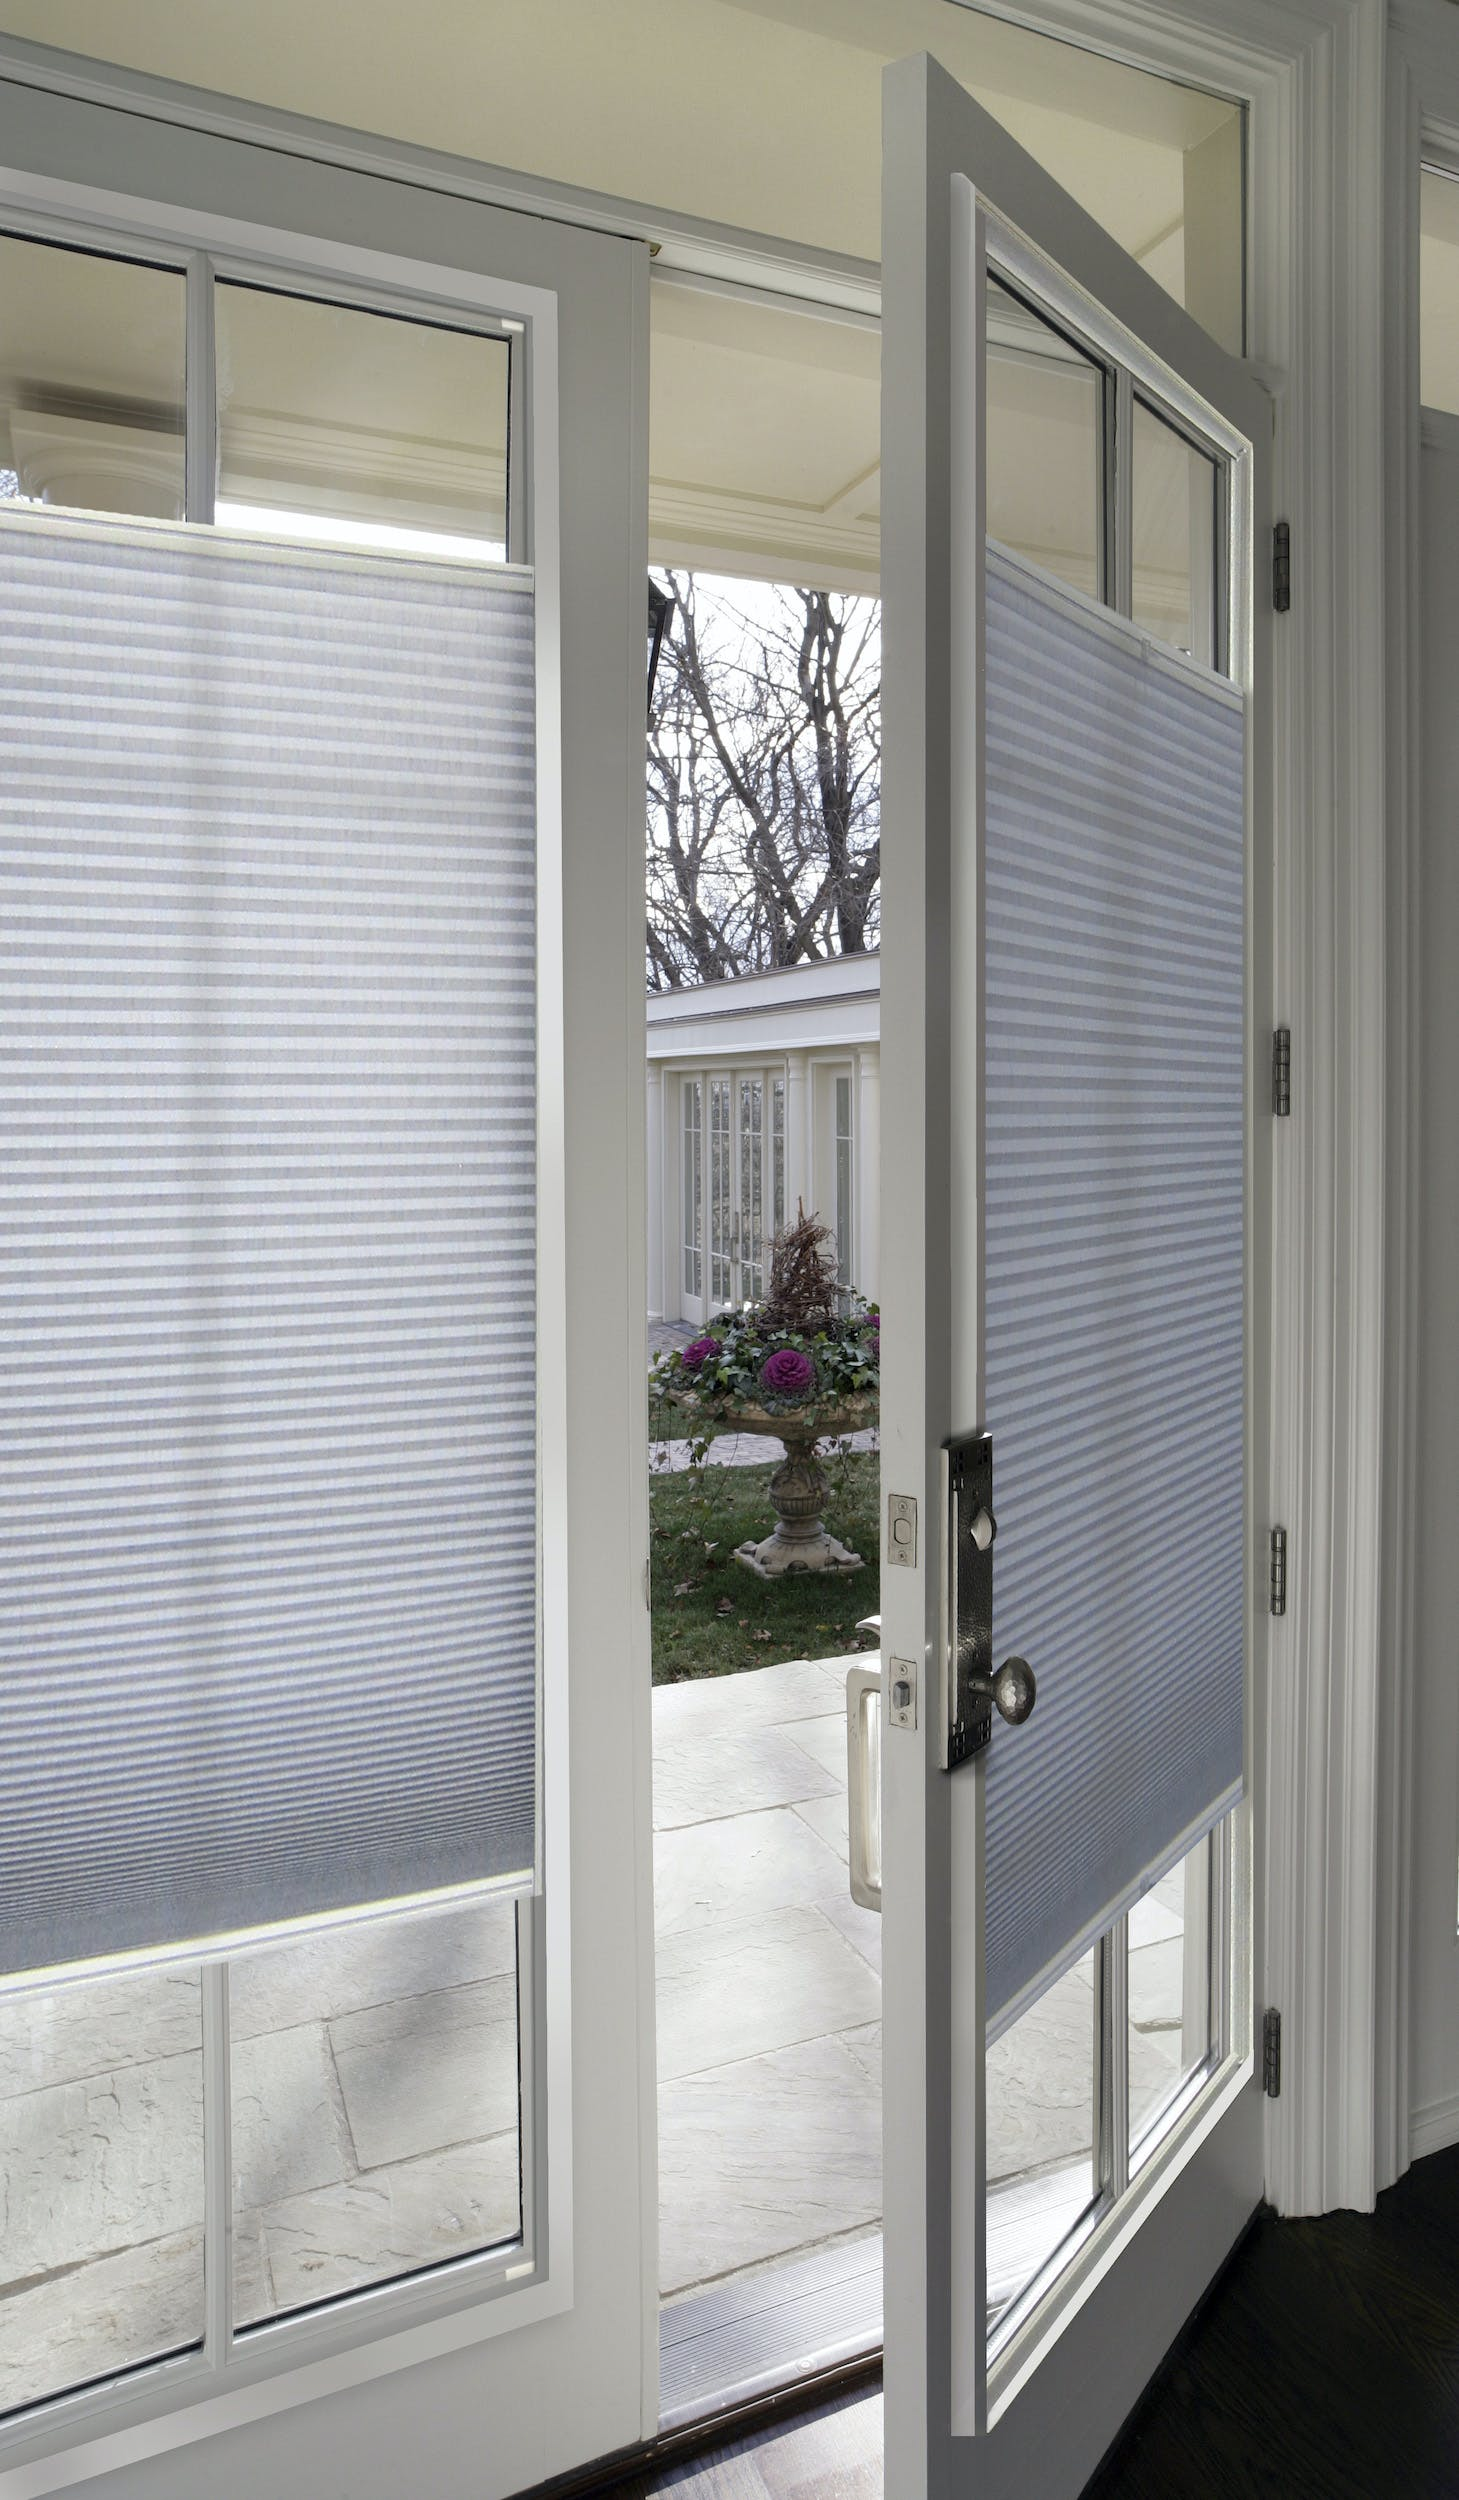 french doors with white cellular shades installed over the glass.